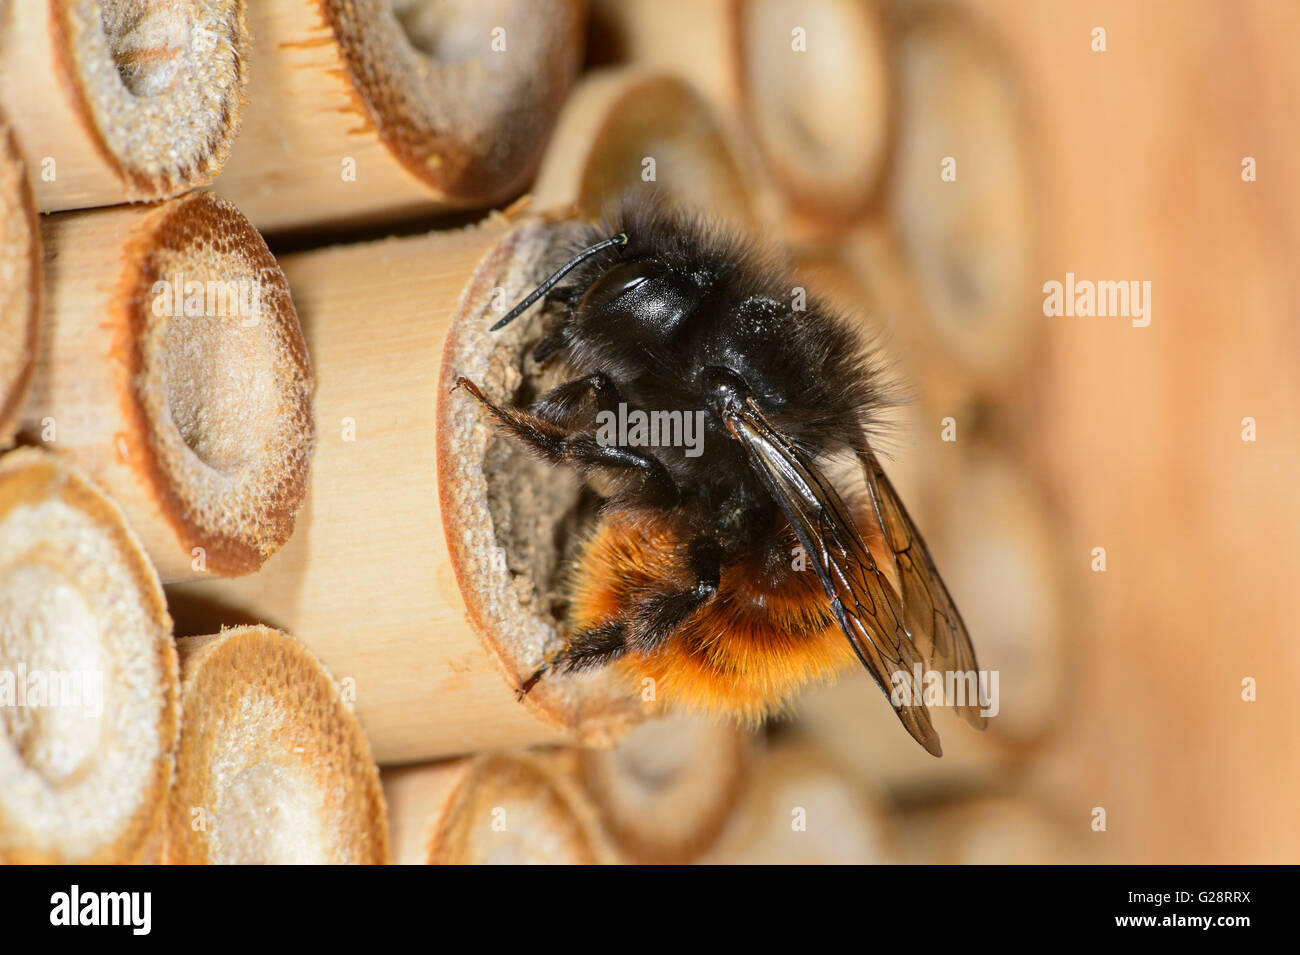 Hornfaced bee (Osmia cornuta), cloing the breeding tunnel, Bee Hotel, artificial breeding site, Switzerland Stock Photo